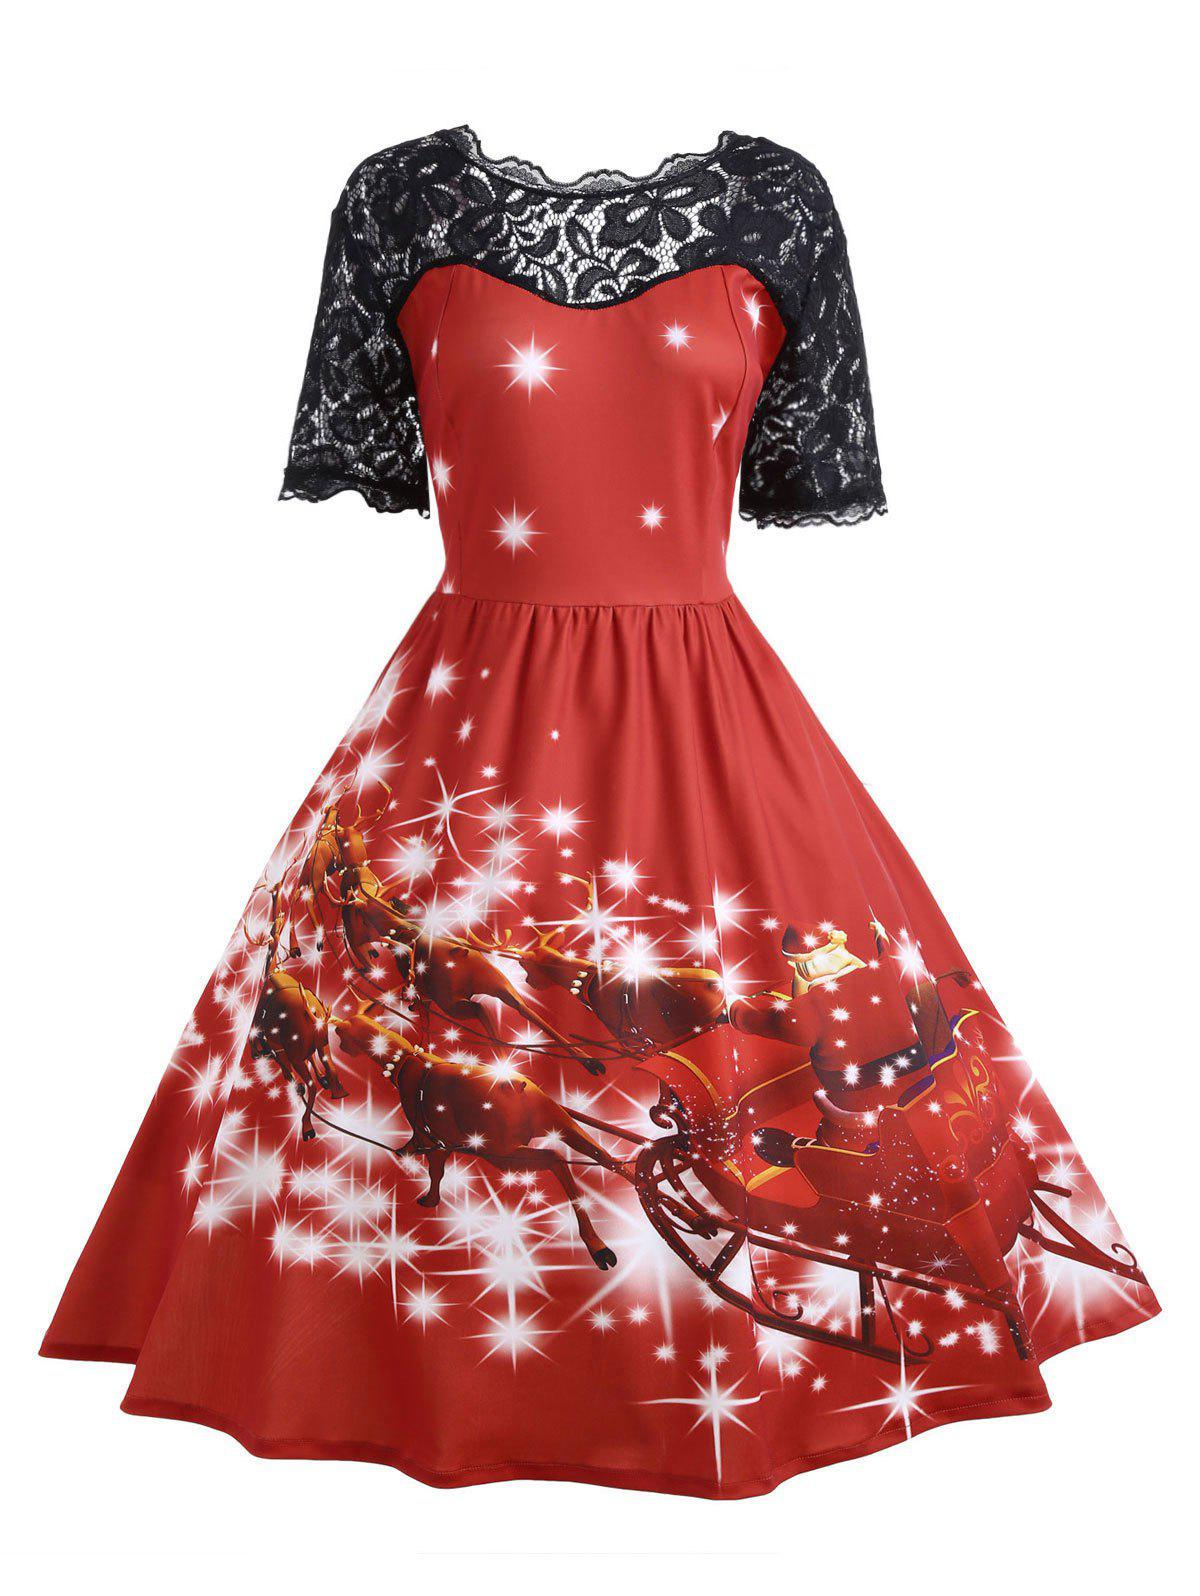 Plus Size Lace Panel Midi Father Christmas Party DressWOMEN<br><br>Size: 5XL; Color: RED; Style: Cute; Material: Cotton Blend,Polyester; Silhouette: Ball Gown; Dresses Length: Mid-Calf; Neckline: Scoop Neck; Sleeve Length: Short Sleeves; Embellishment: Hollow Out,Lace,Vintage; Pattern Type: Animal,Character,Print,Star; With Belt: No; Season: Fall,Winter; Weight: 0.4700kg; Package Contents: 1 x Dress;